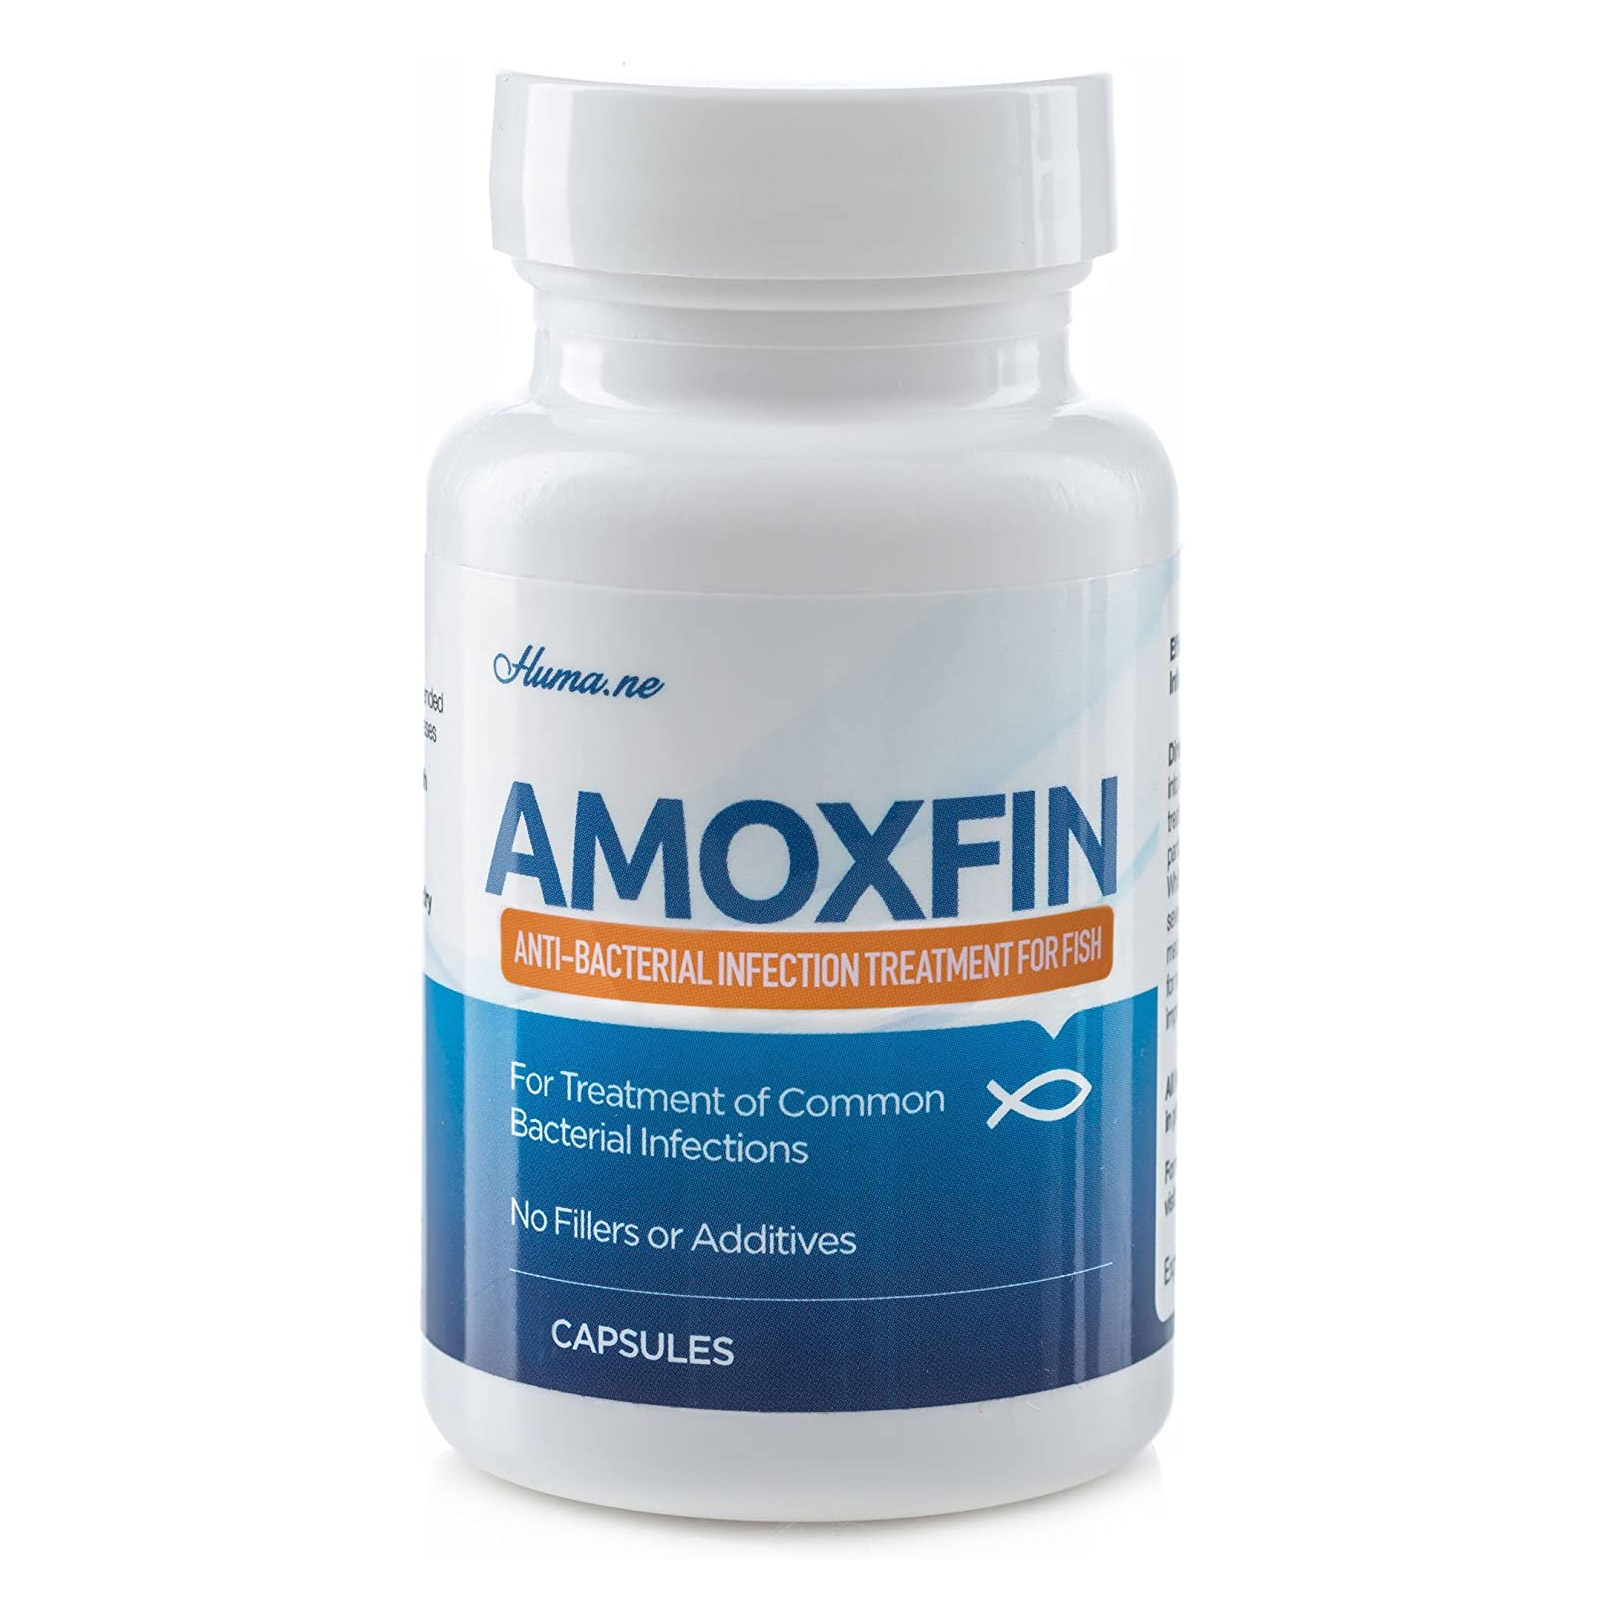 amoxfin fish antibiotic for fish buy amoxfin fish